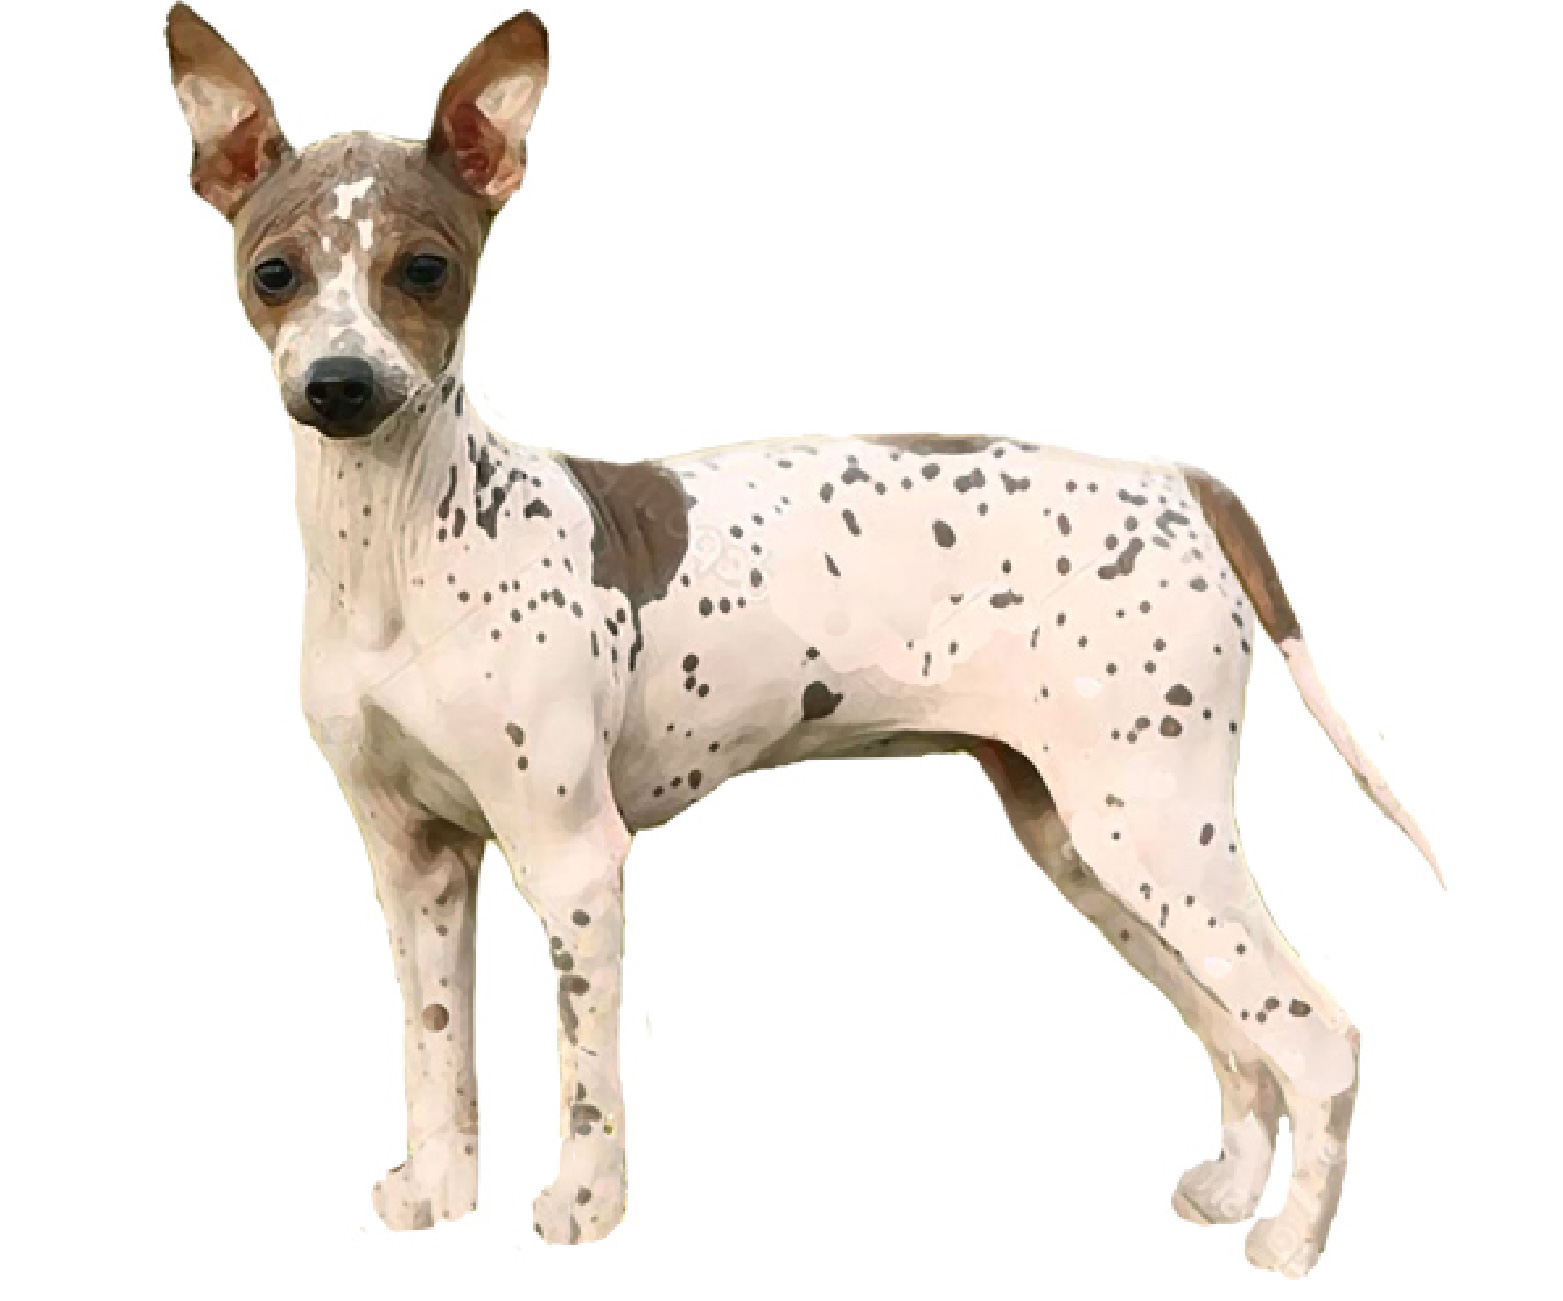 American Hairless (Rat) Terrier set